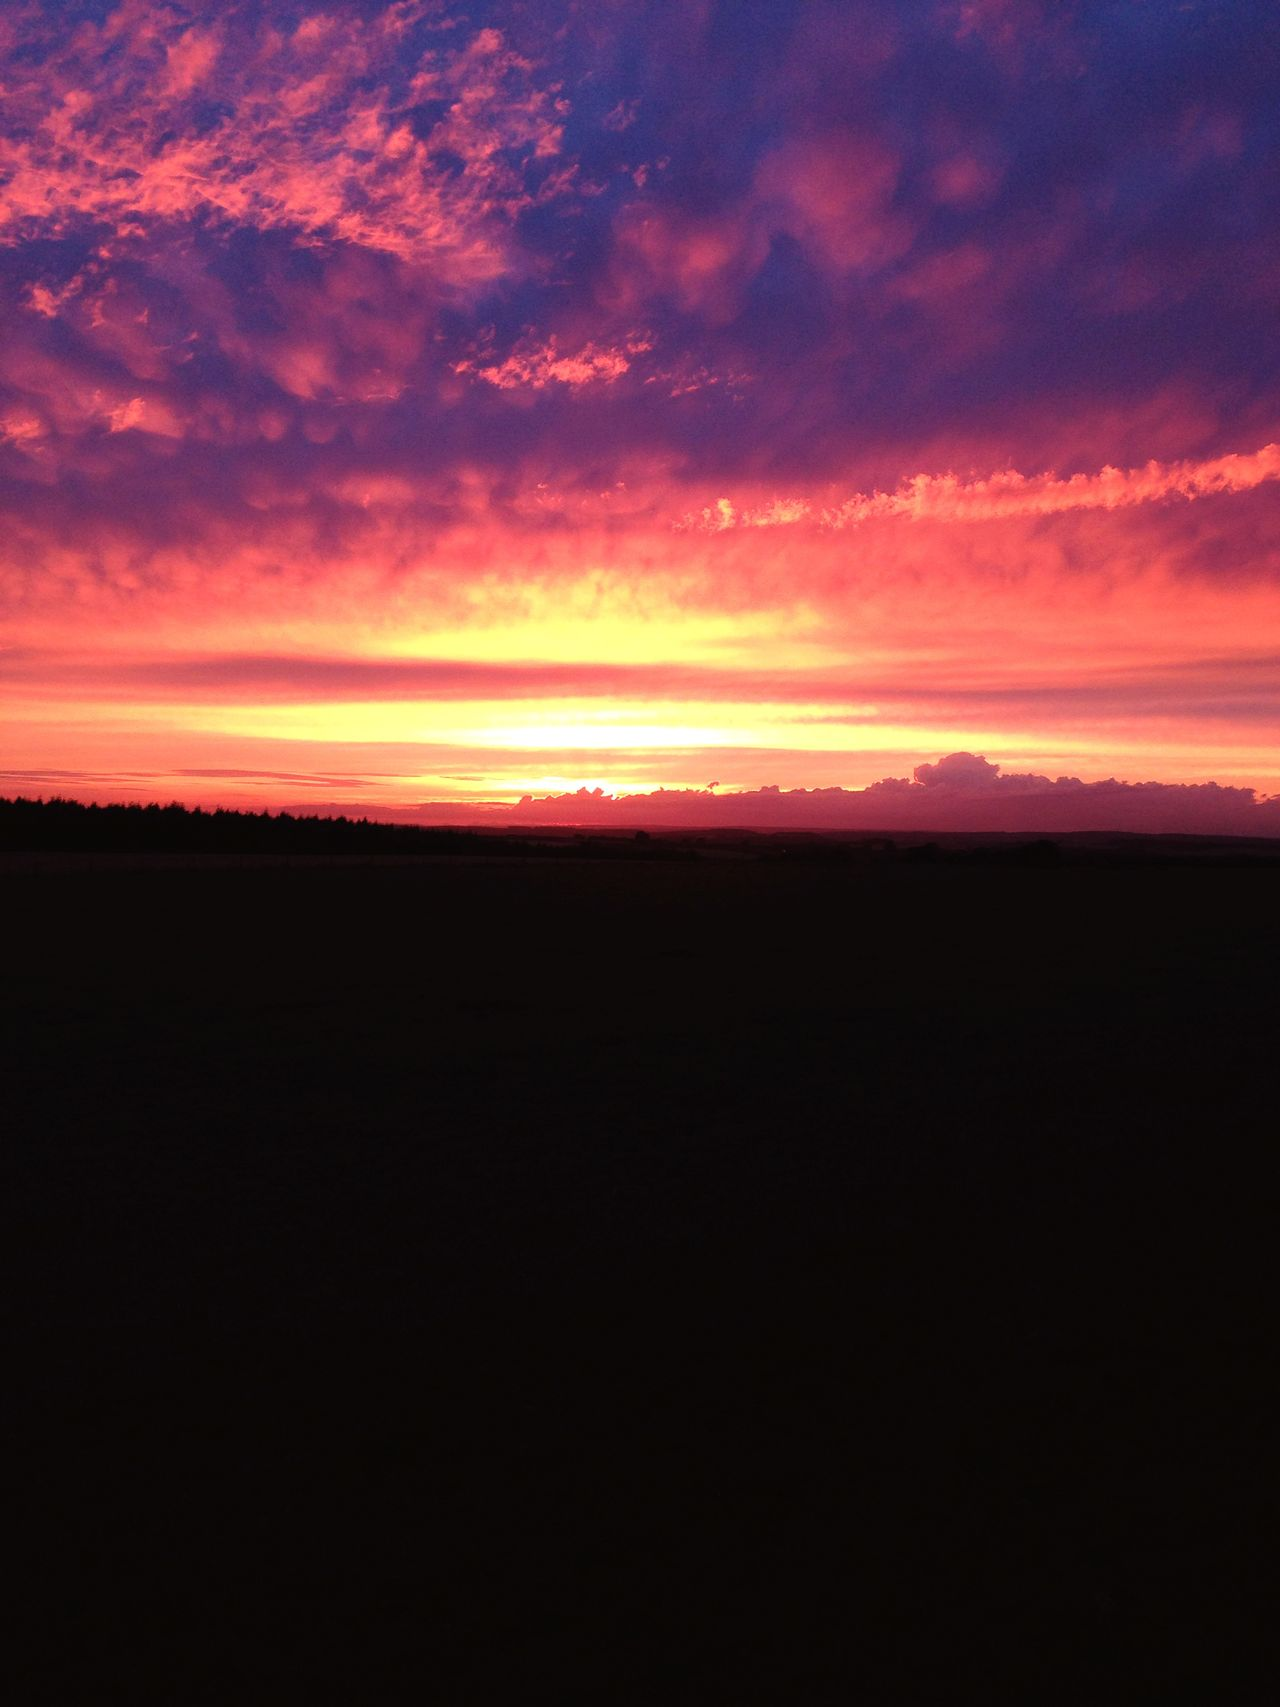 Dalby Forest High Rigg Farm Sunset Sunset_collection Sunset Silhouettes Nightphotography Summer2015 Summertime Camping